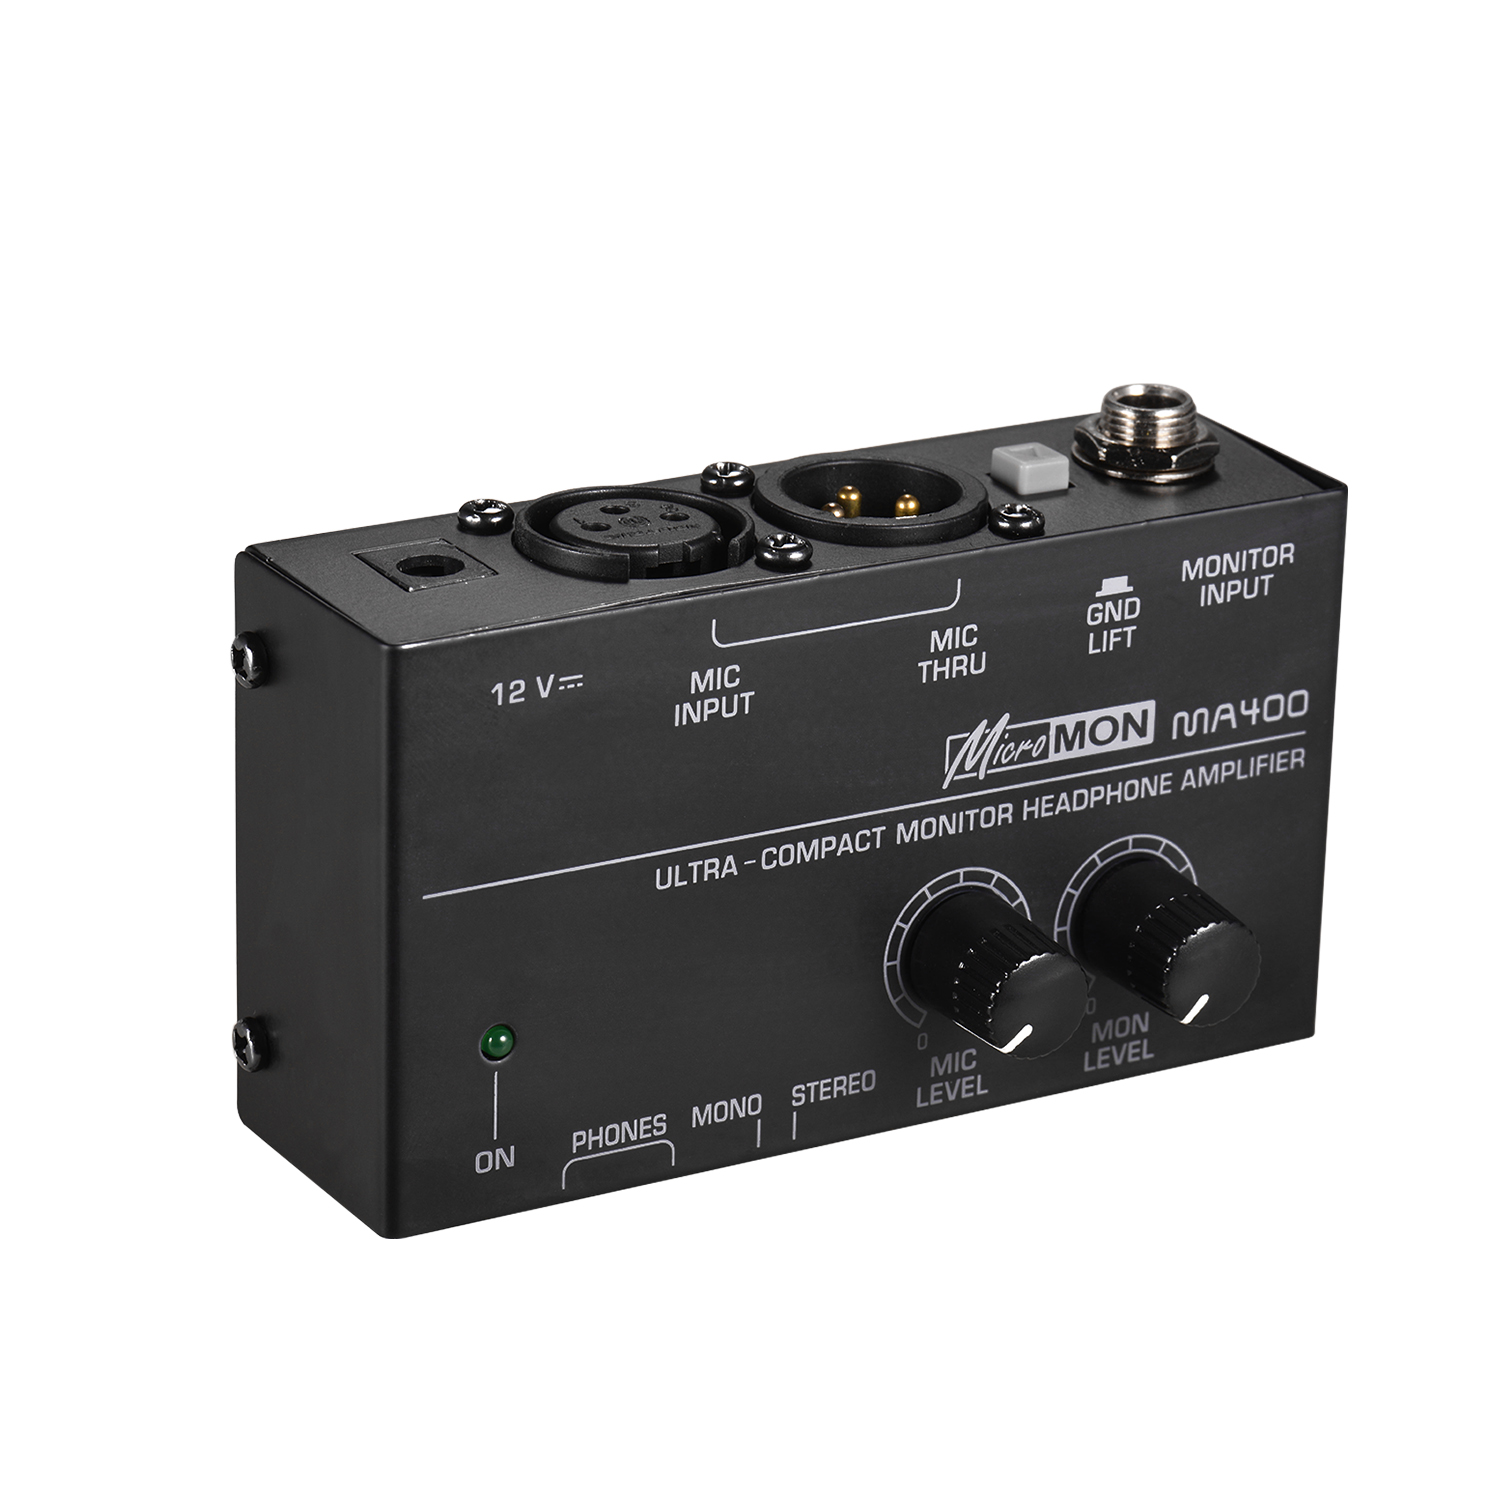 Ultra-Compact Monitor Headphone Amplifier Amp With XLR Microphone Monitor Input 6.35mm & 3.5mm Headphone Outputs Volume Controls